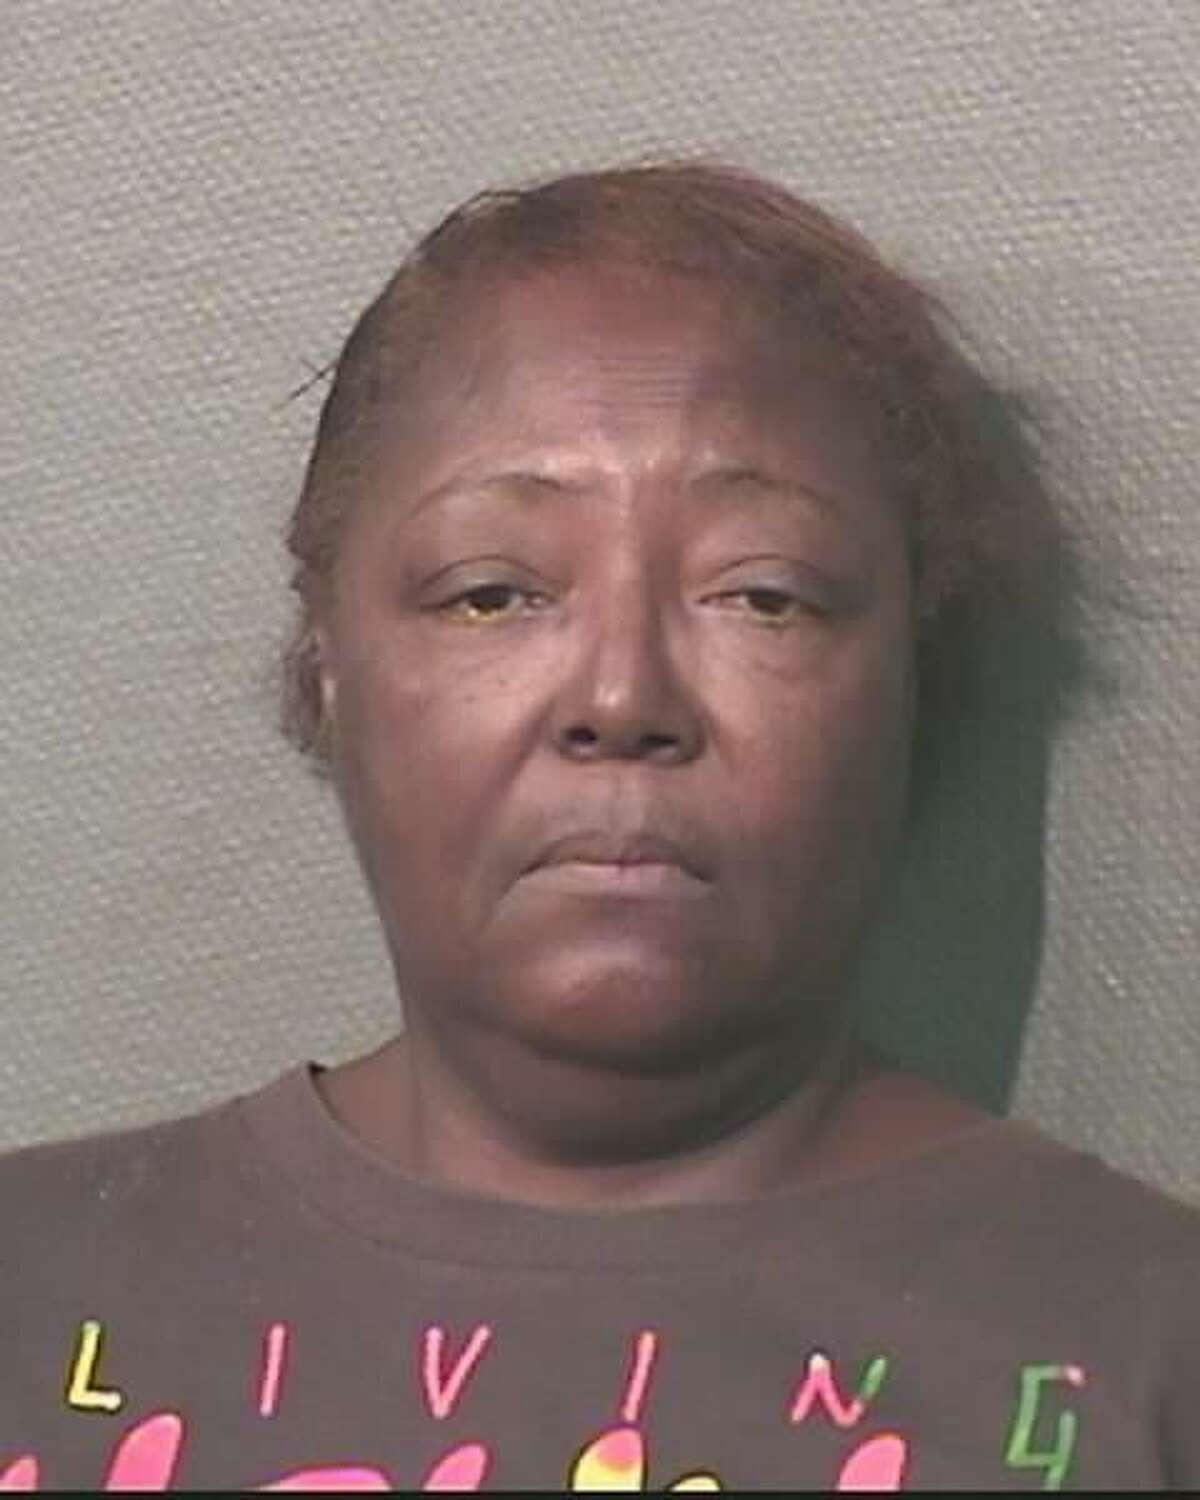 Shelia Smith of Houston is wanted by the Houston Police Department on a charge of aggravated assault with a deadly weapon. Her warrant is active as of Wednesday.